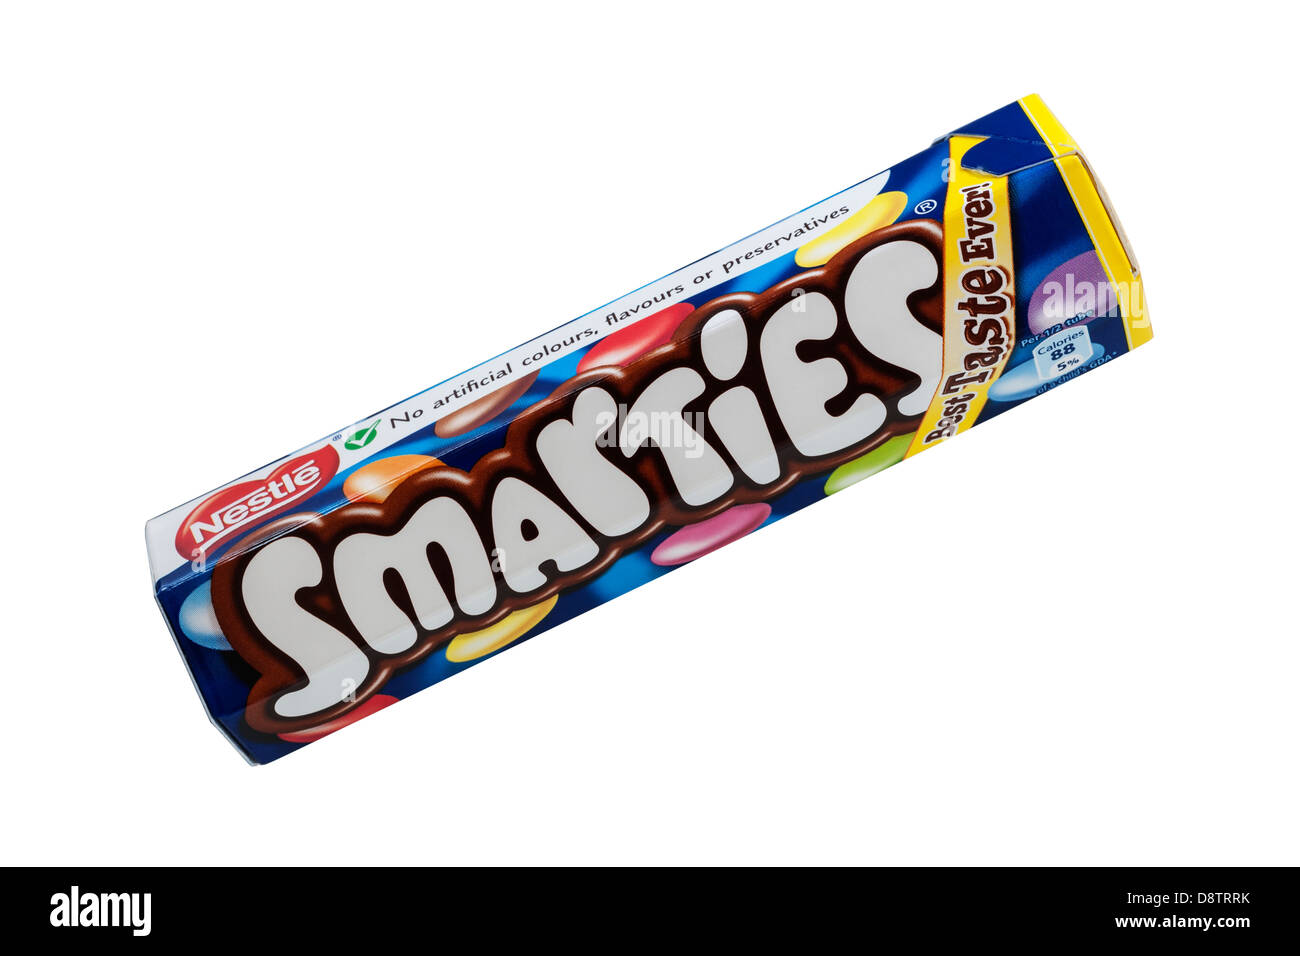 A tube of Nestle smarties on a white background - Stock Image